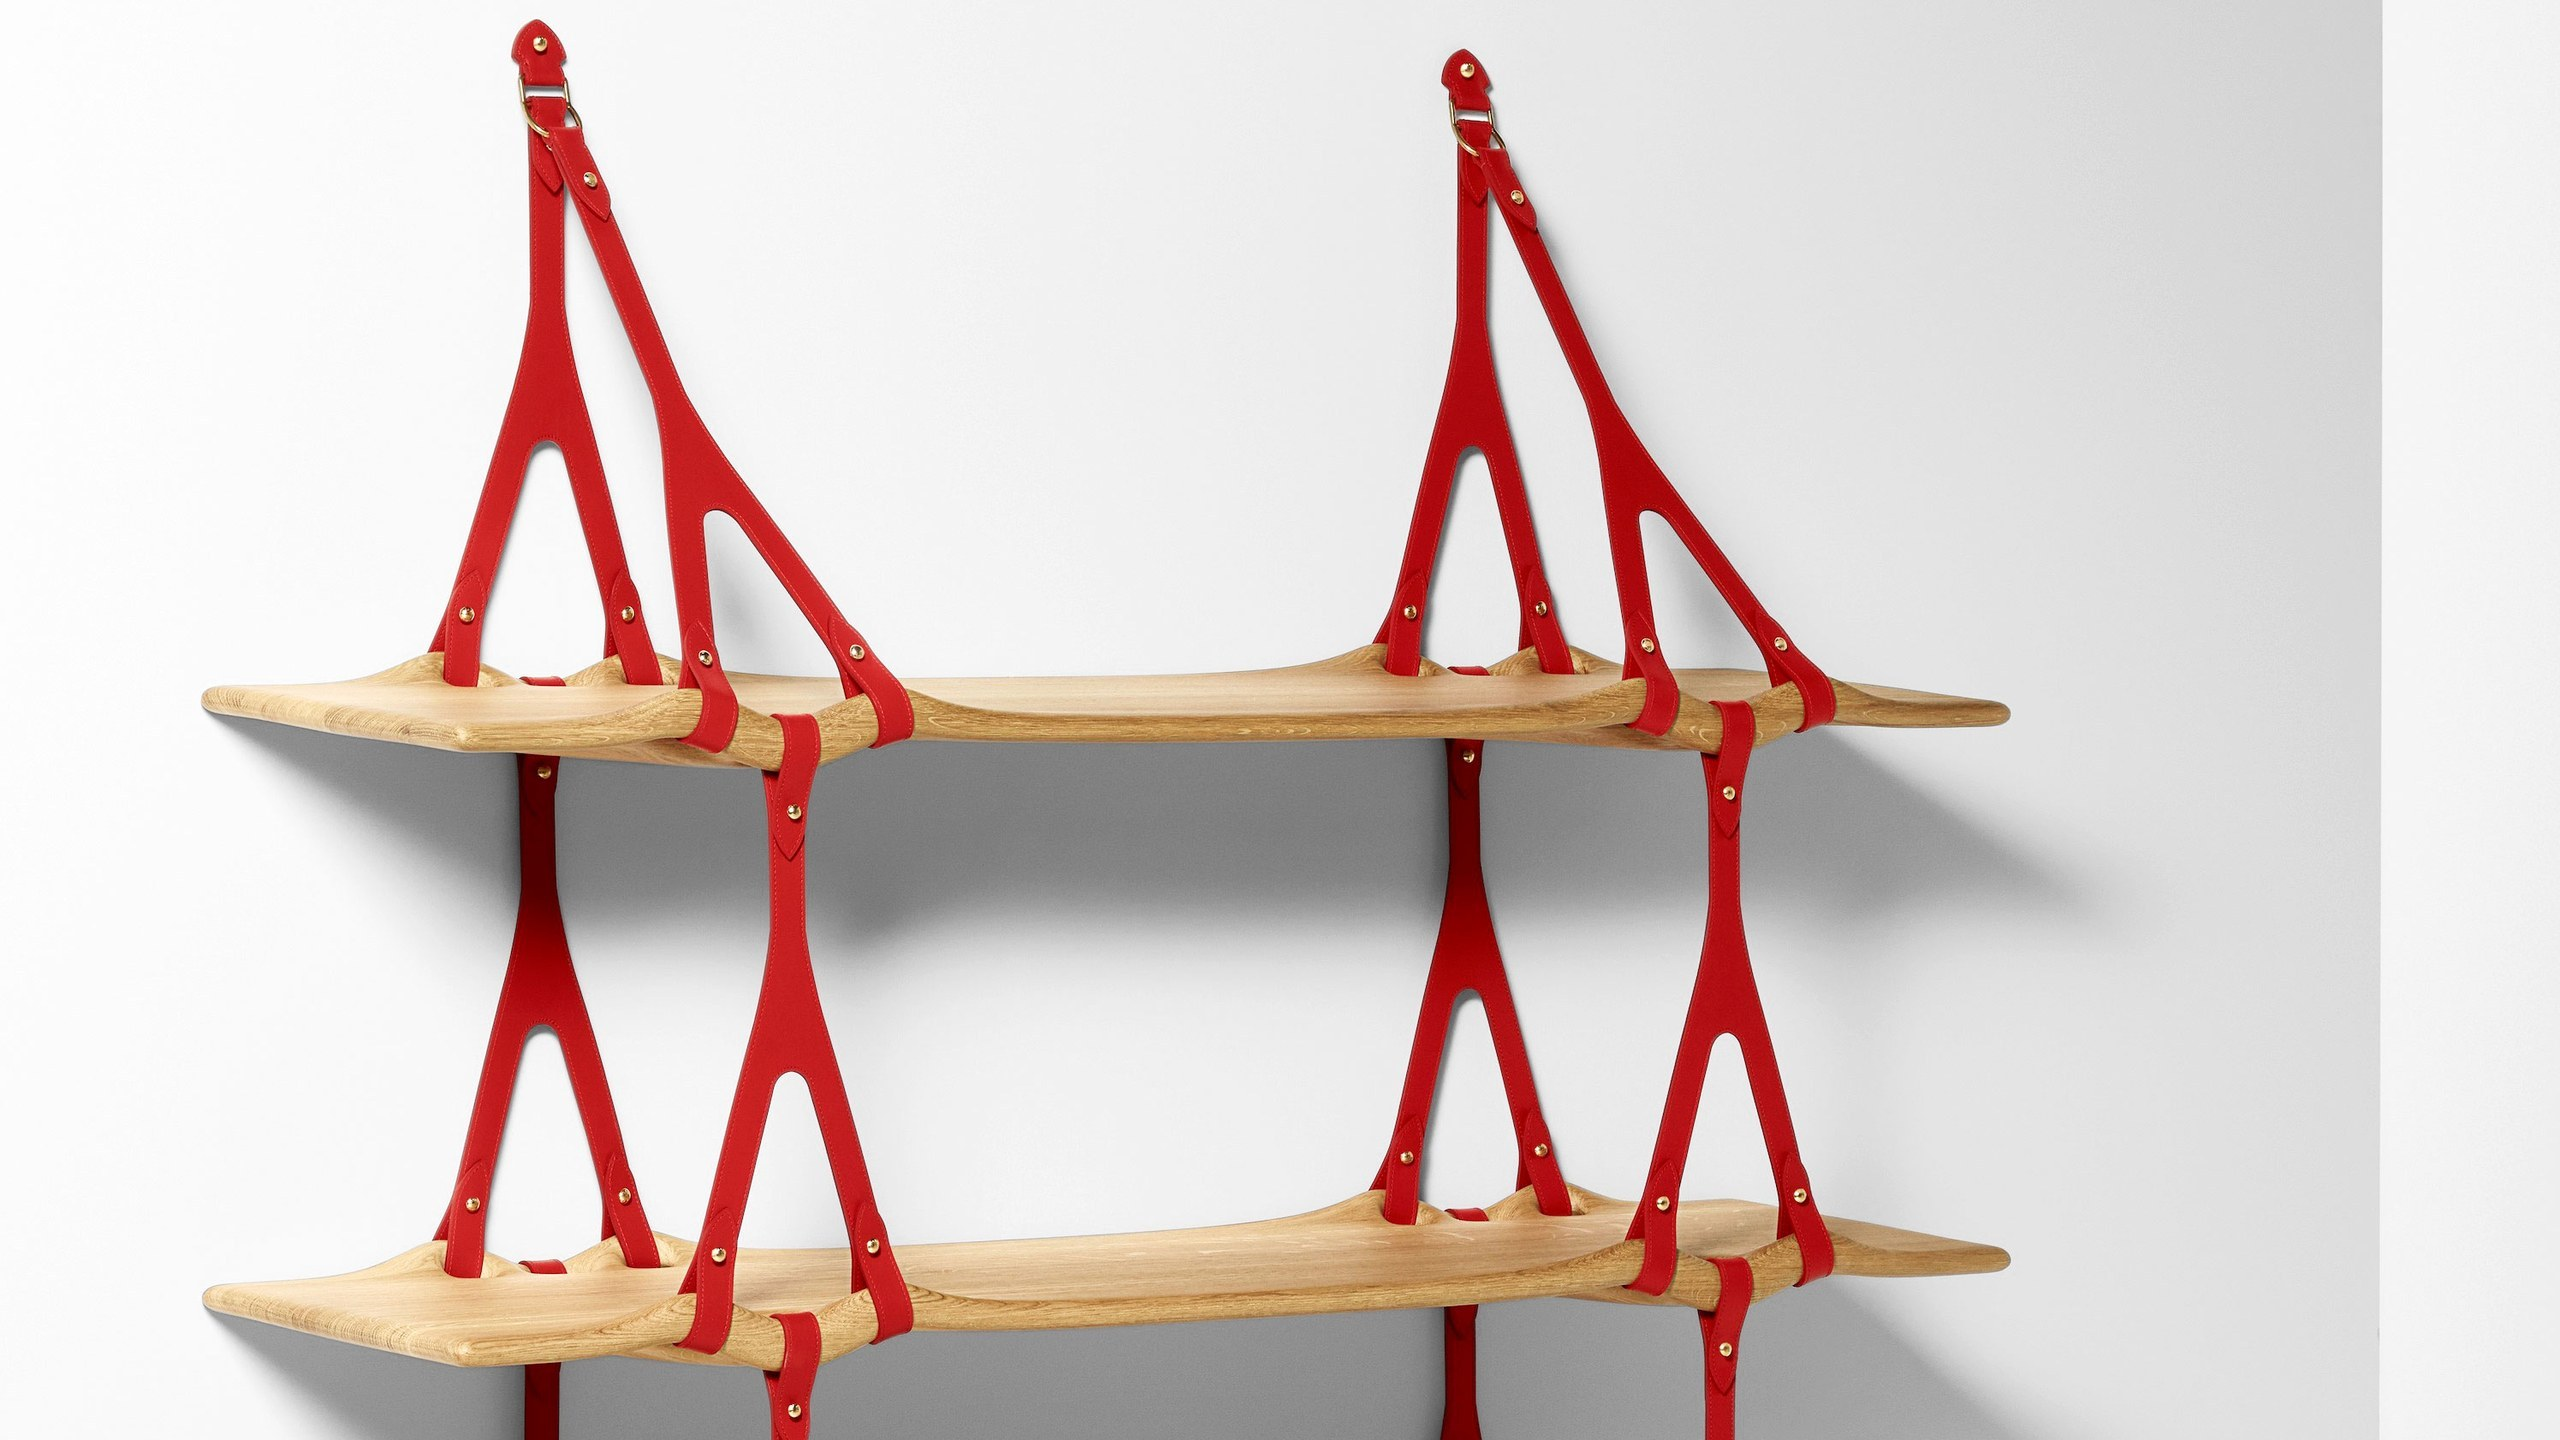 Louis Vuitton Objets Nomades Shelves by Andrew Kudless (photo: courtesy).